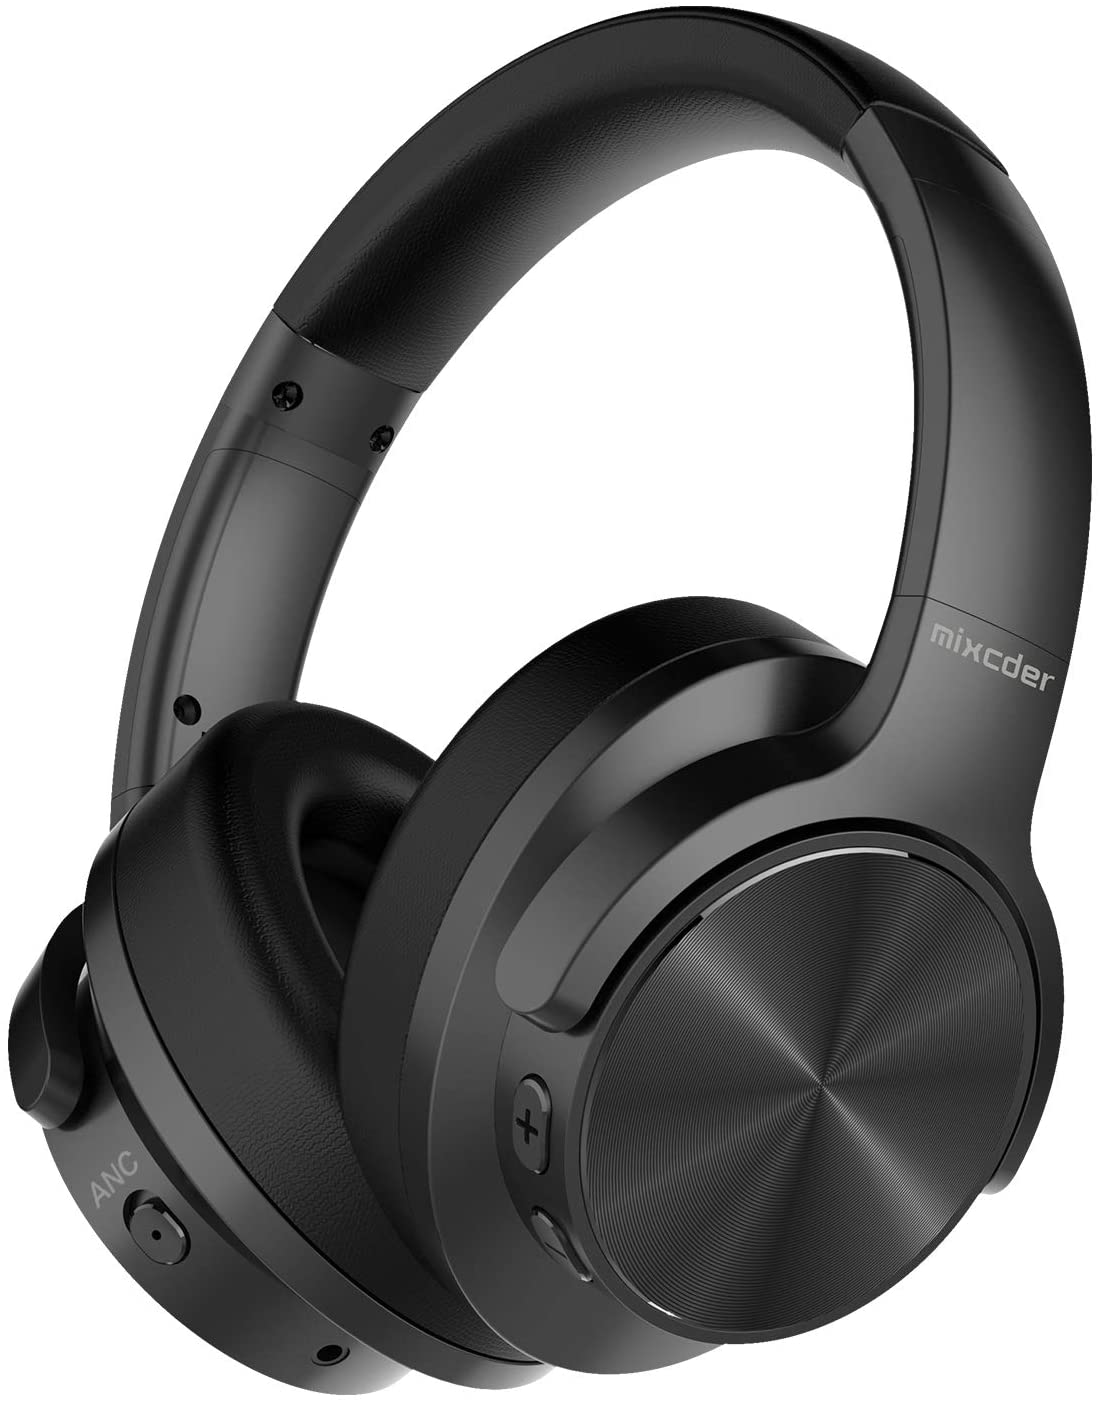 Mixcder E9 Active Noise Cancelling Headphones Wireless Bluetooth 5.0, 2020 Upgraded Foldable over Ear Headset with Quick Charge, 35H Playtime - Black